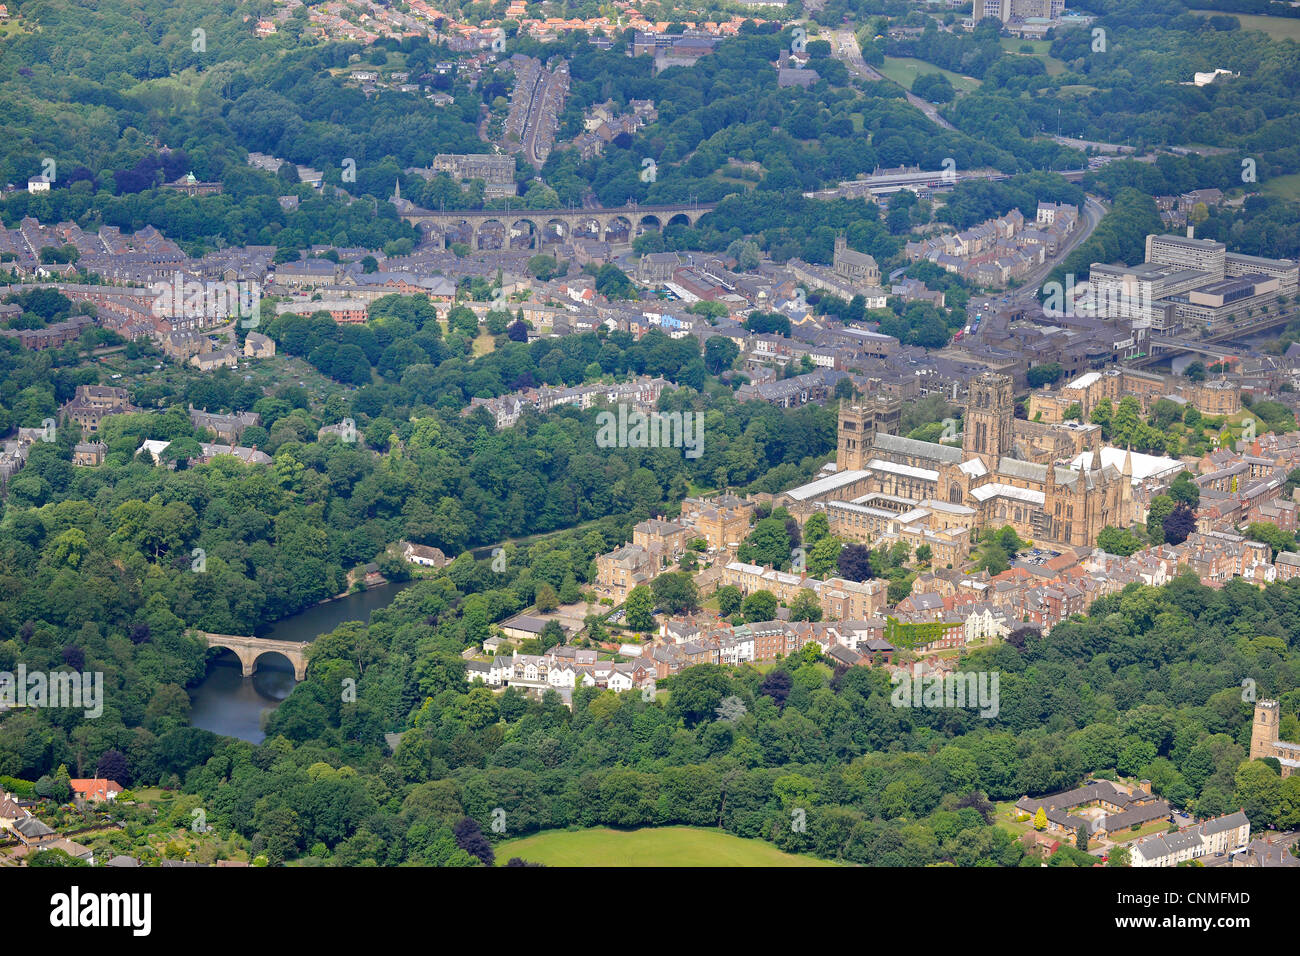 Aerial View of Durham Cathedral with Durham town in the background. - Stock Image